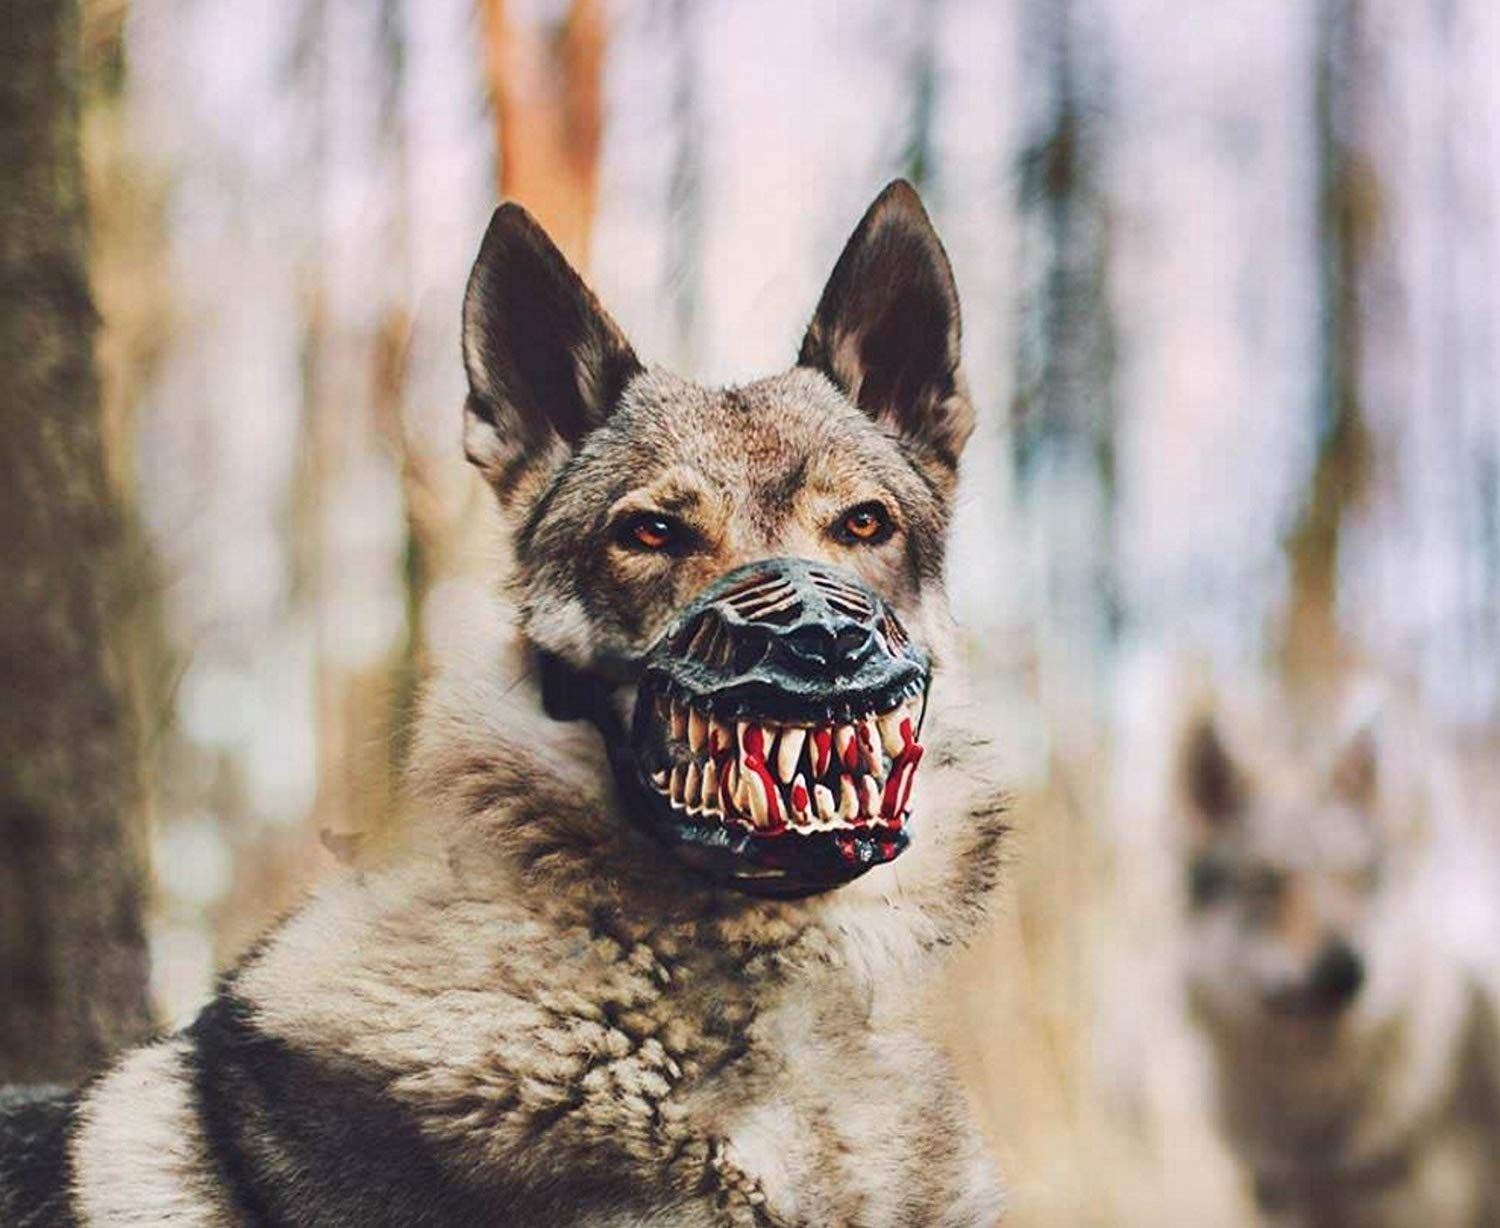 Werewolf Dog Muzzle Scary Dogs Dogs